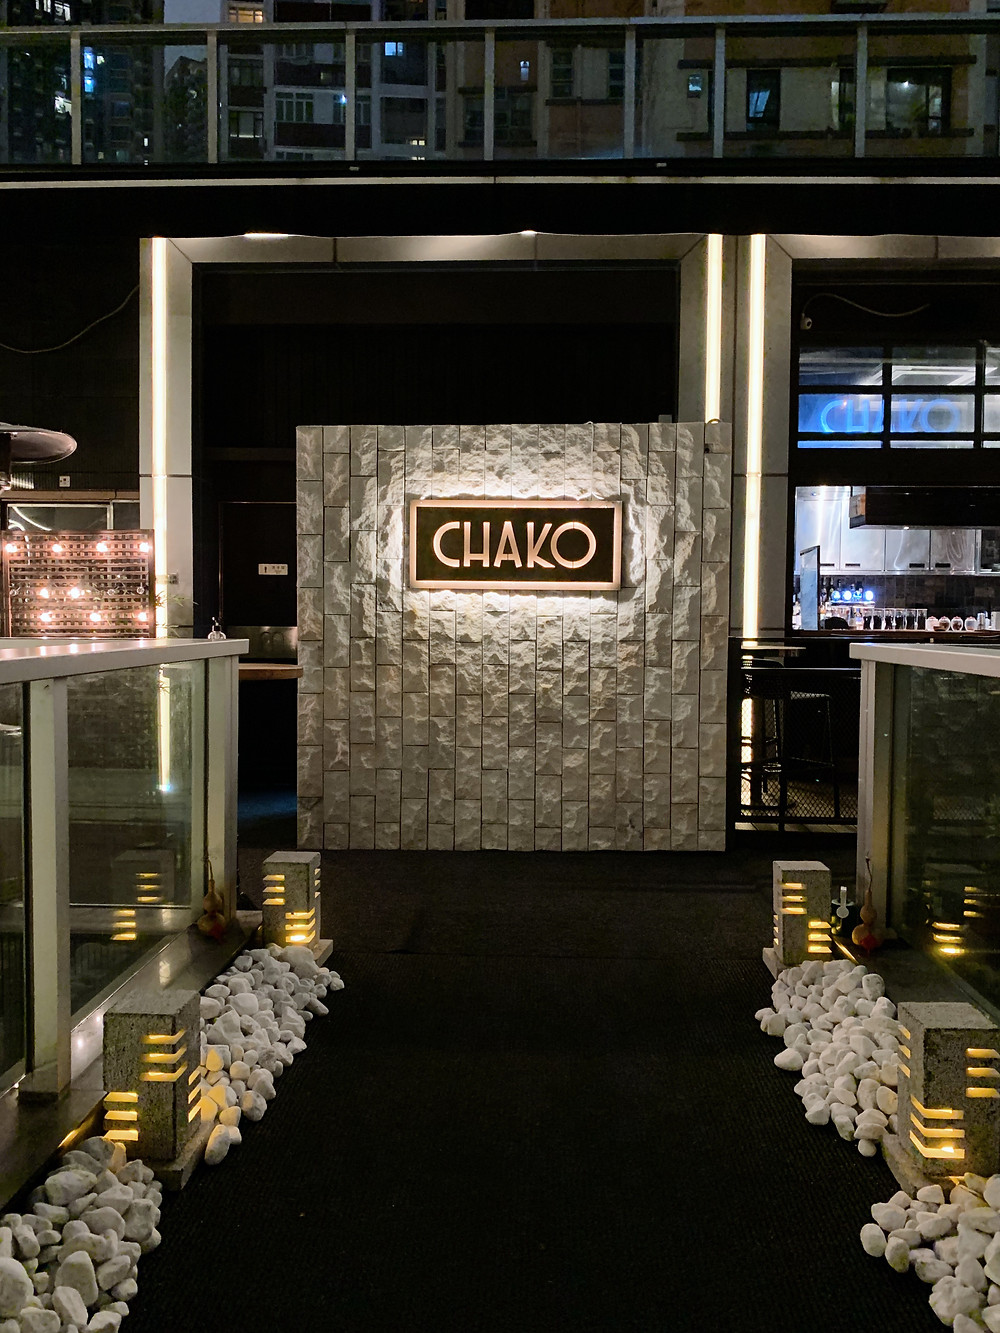 Chako restaurant in Hong Kong